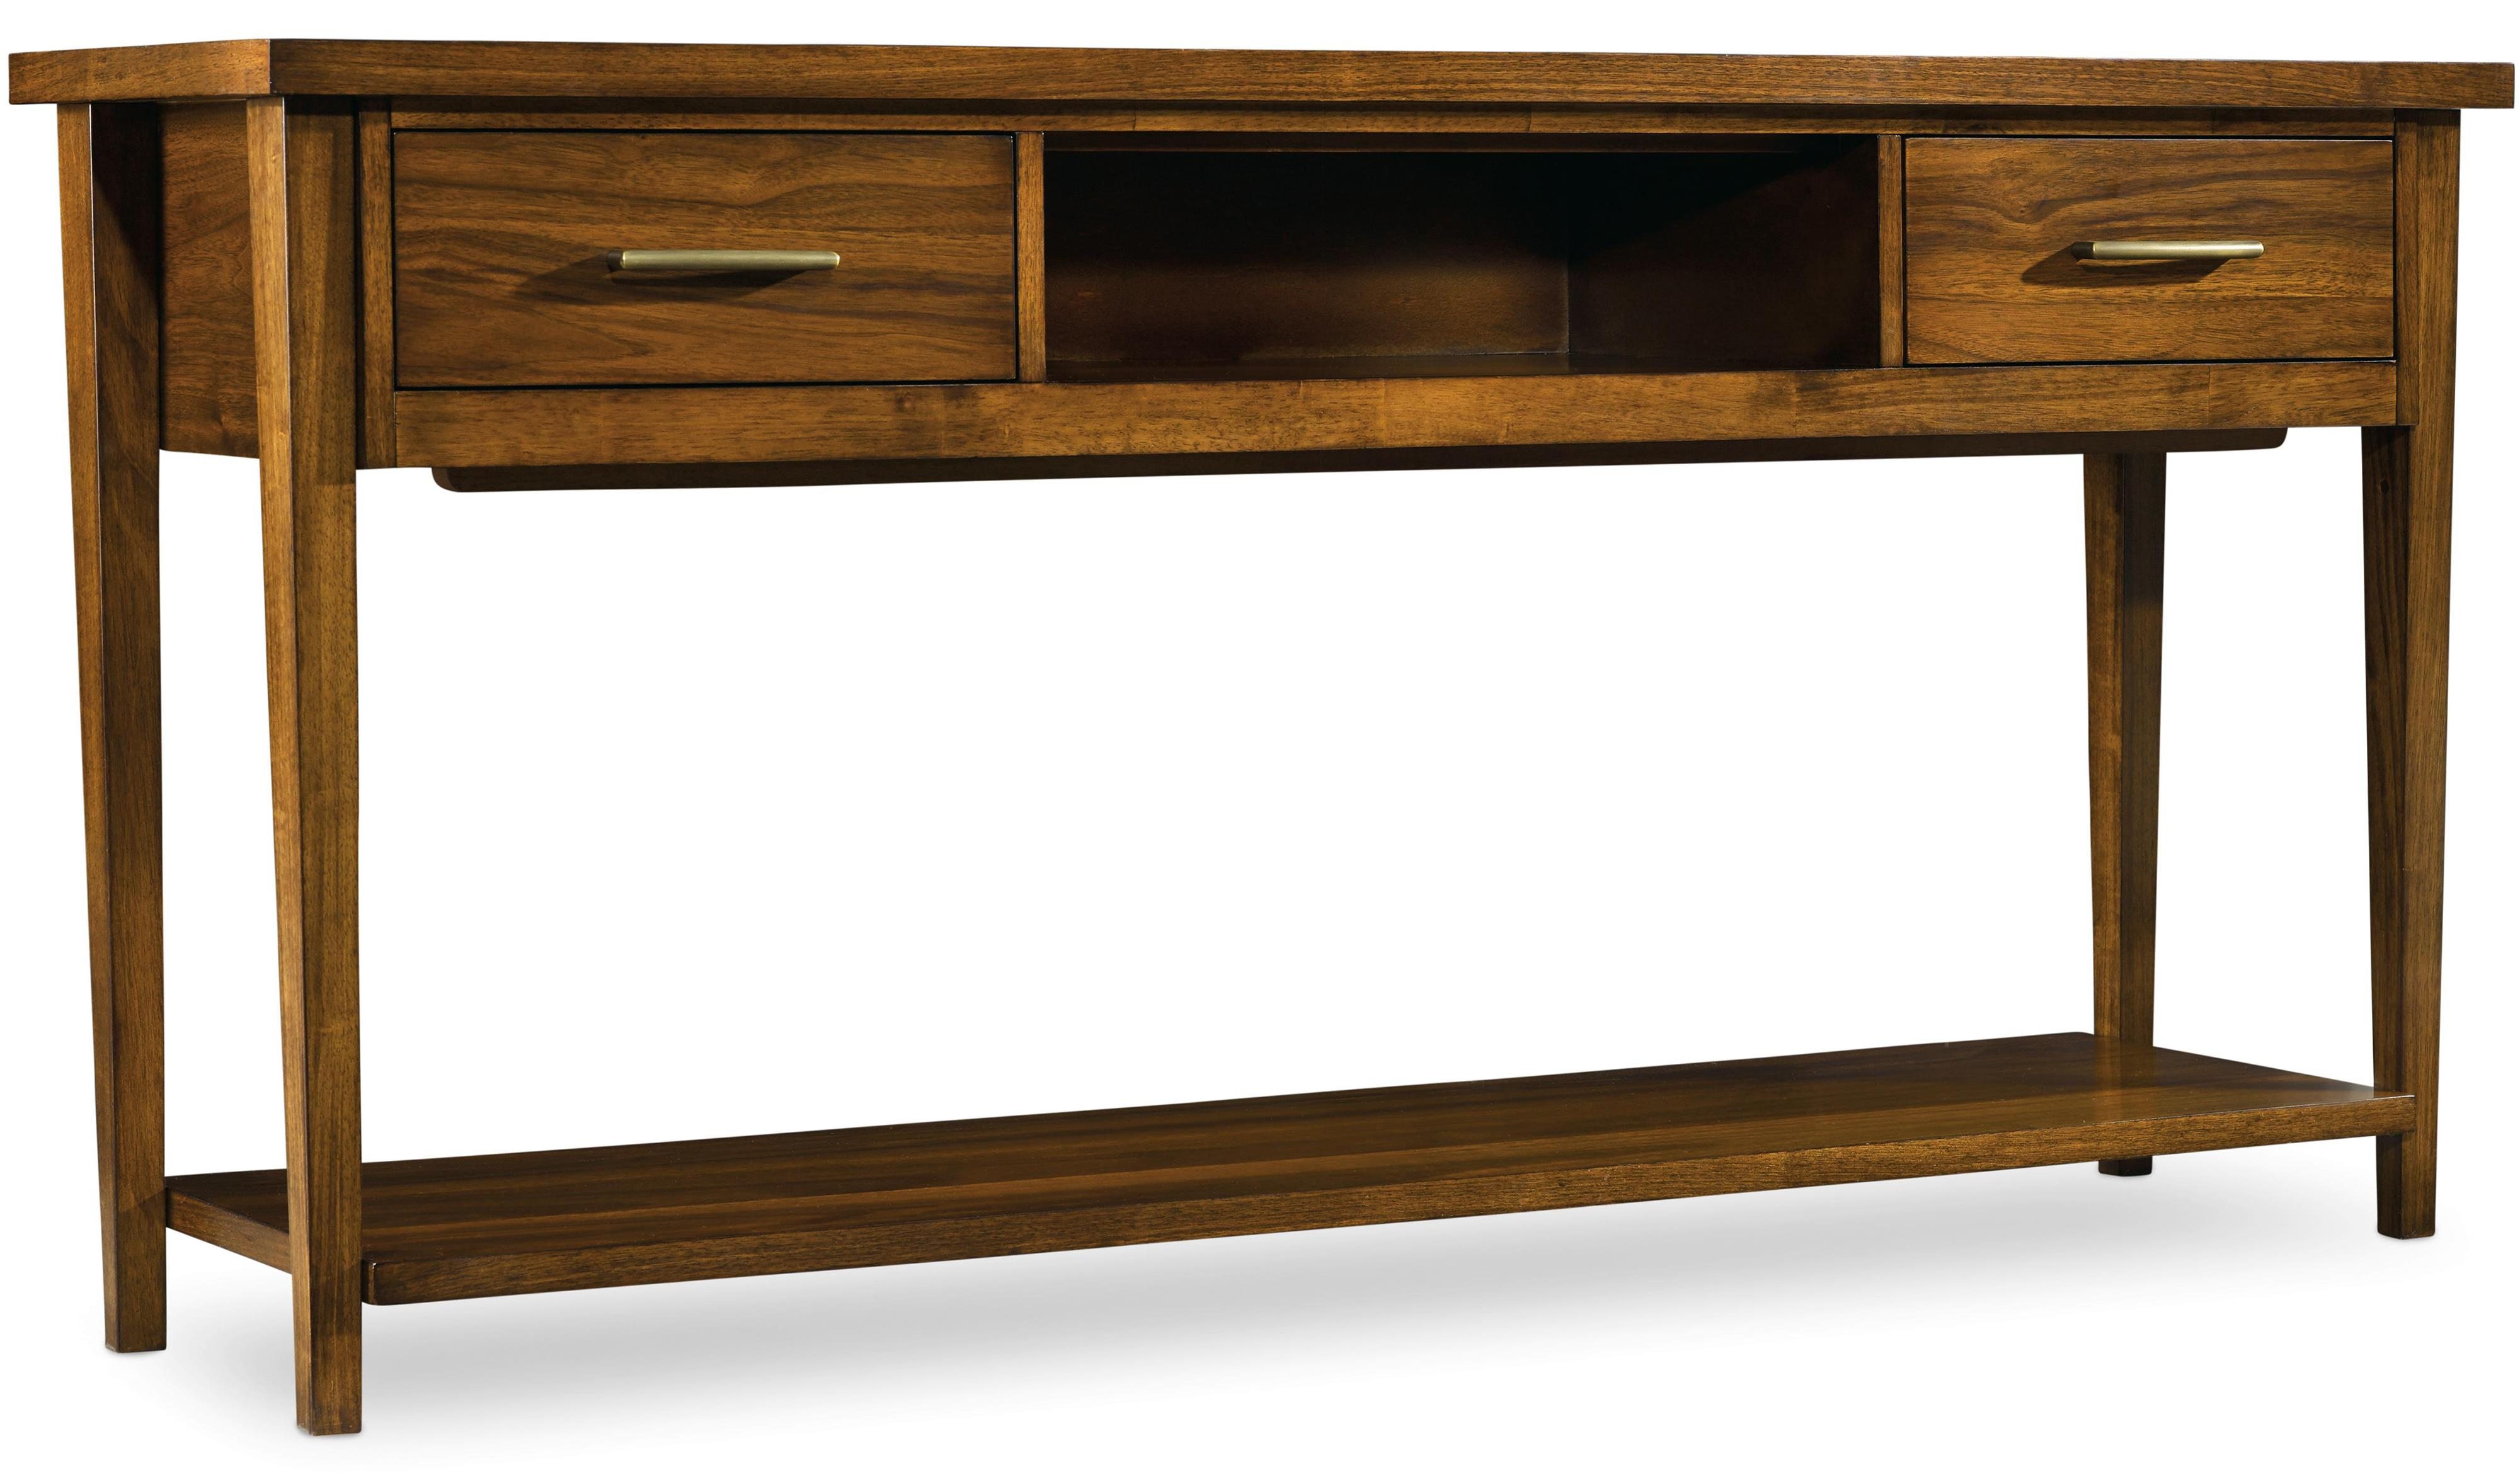 Hooker Furniture Viewpoint   Sofa Table - Item Number: 5328-80151